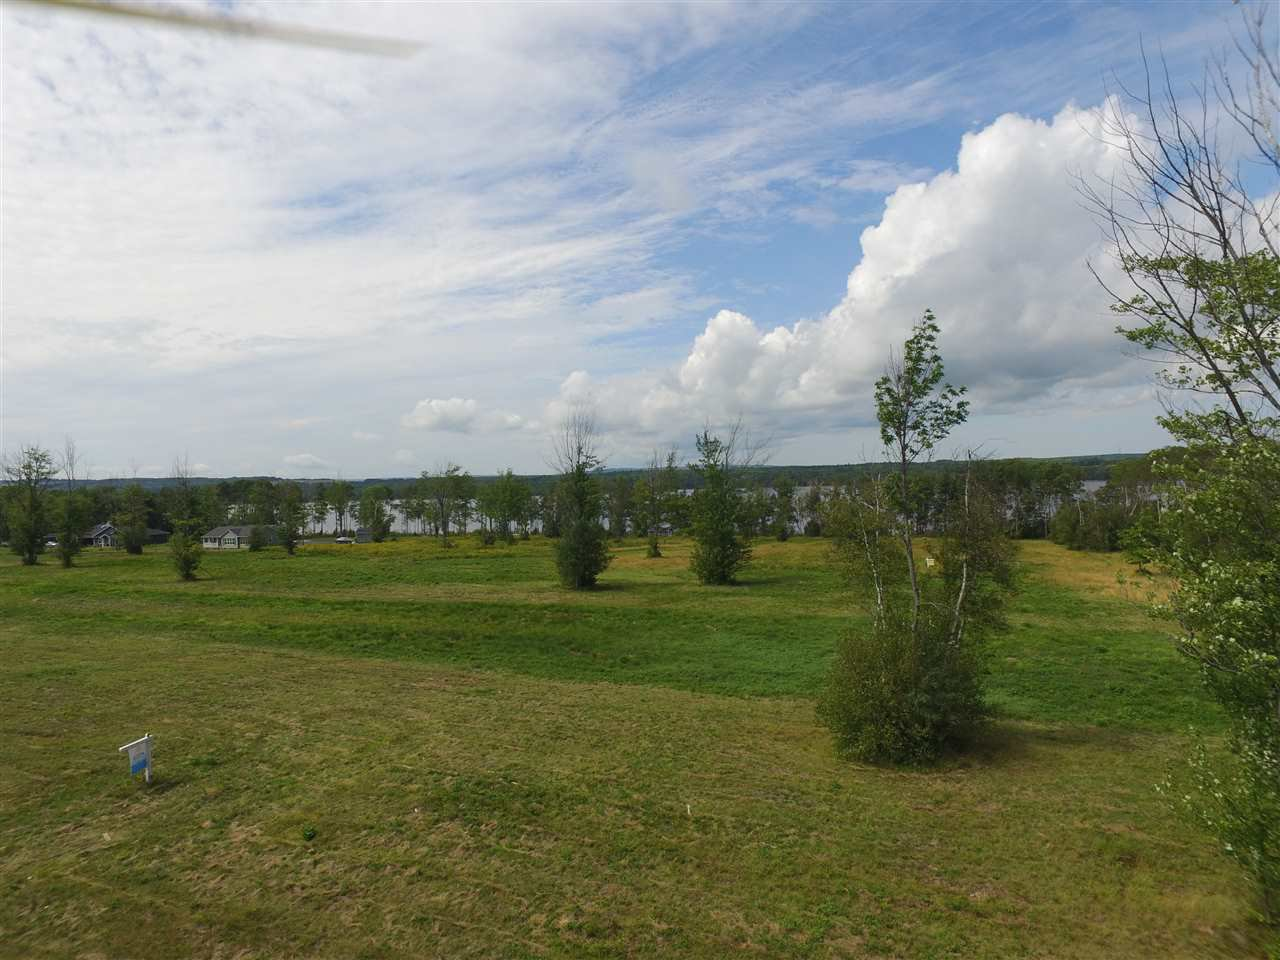 Main Photo: Lot 4 Granton Abercrombie Road in Granton: 108-Rural Pictou County Vacant Land for sale (Northern Region)  : MLS®# 201920570